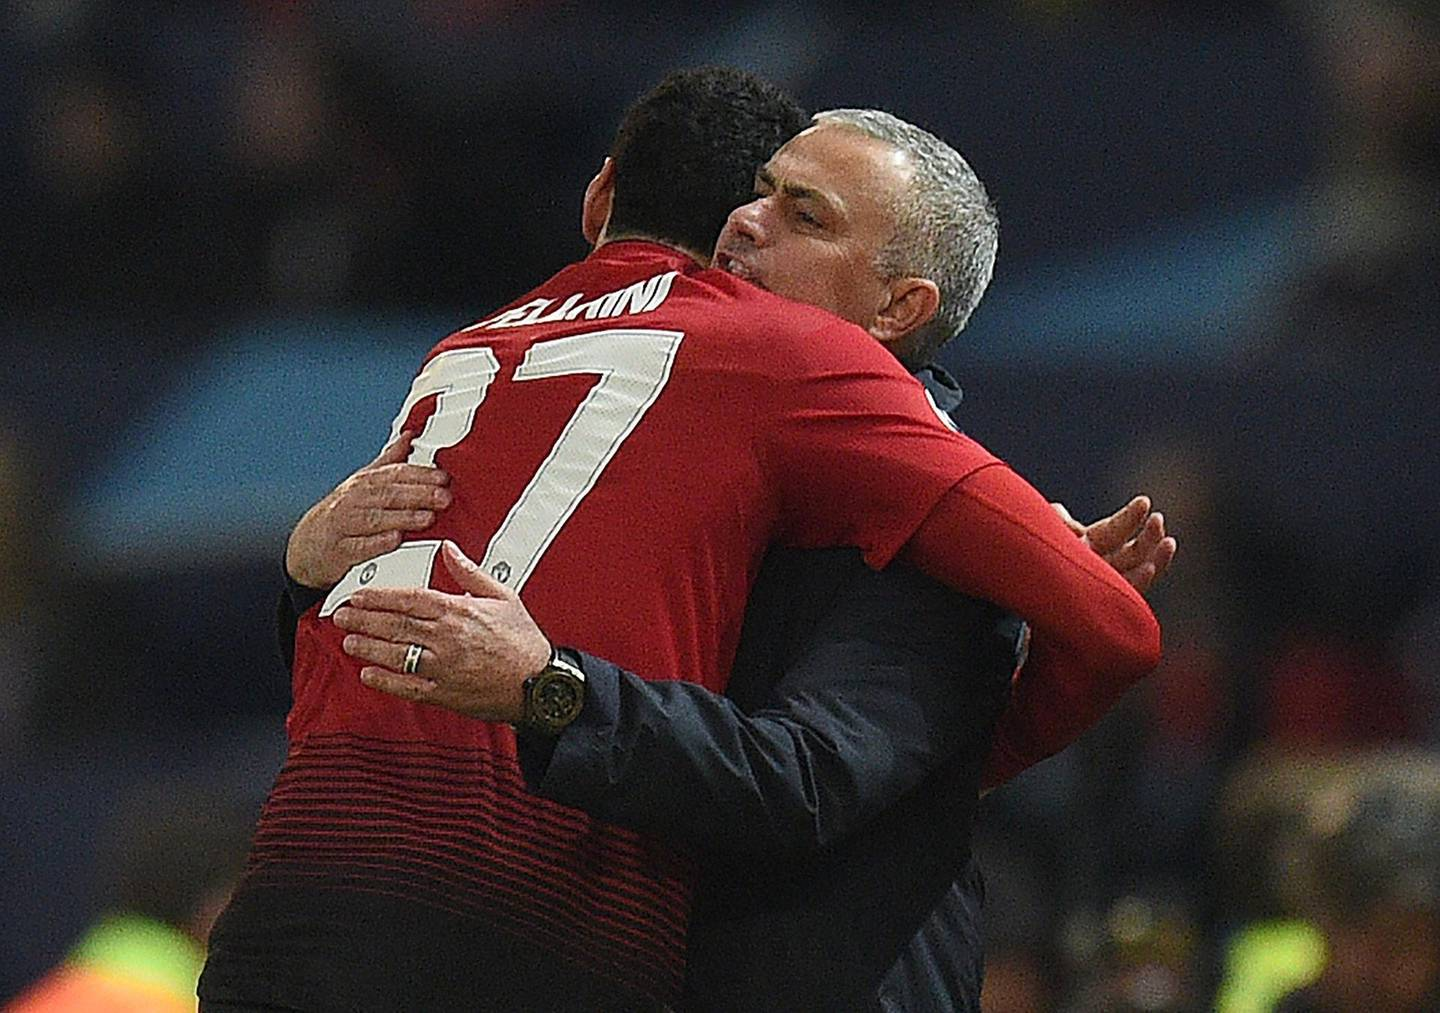 Manchester United's Belgian midfielder Marouane Fellaini (L) celebrates scoring the opening goal with Manchester United's Portuguese manager Jose Mourinho during the UEFA Champions League group H football match between Manchester United and Young Boys at Old Trafford in Manchester, north-west England on November 27, 2018.  / AFP / Oli SCARFF